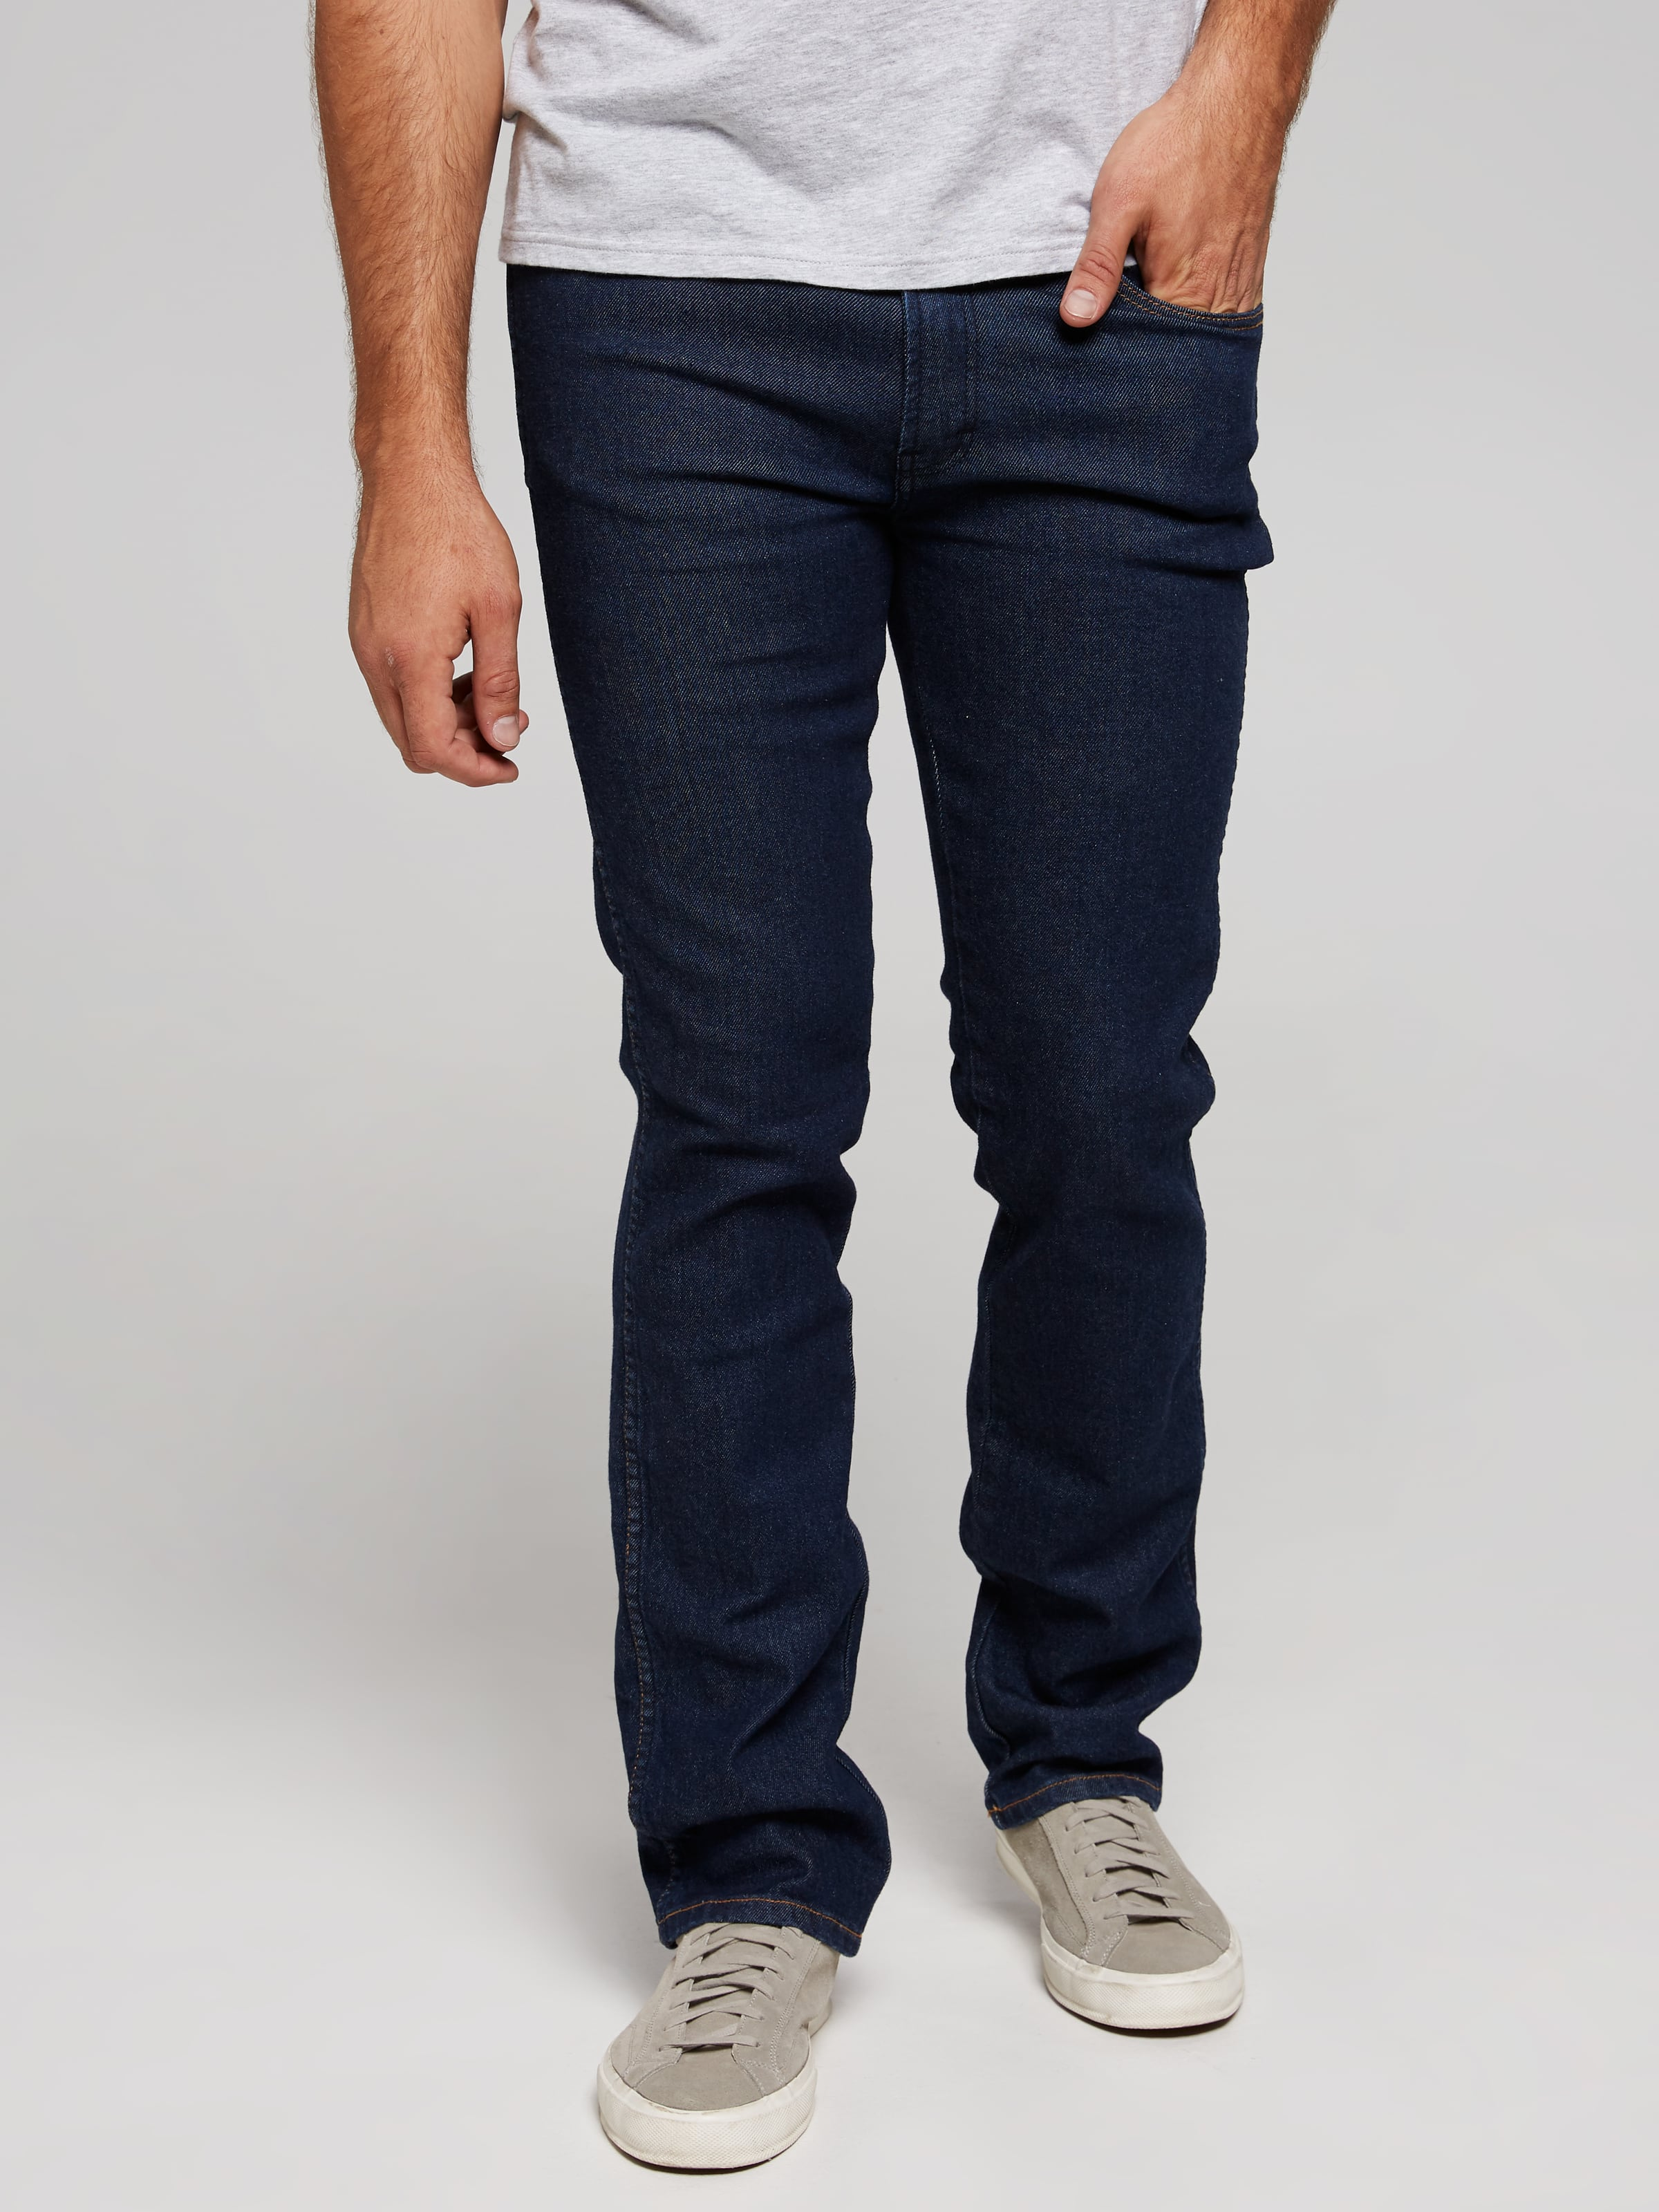 Wrangler Classics Stretch Straight Jean In Rinse Wash